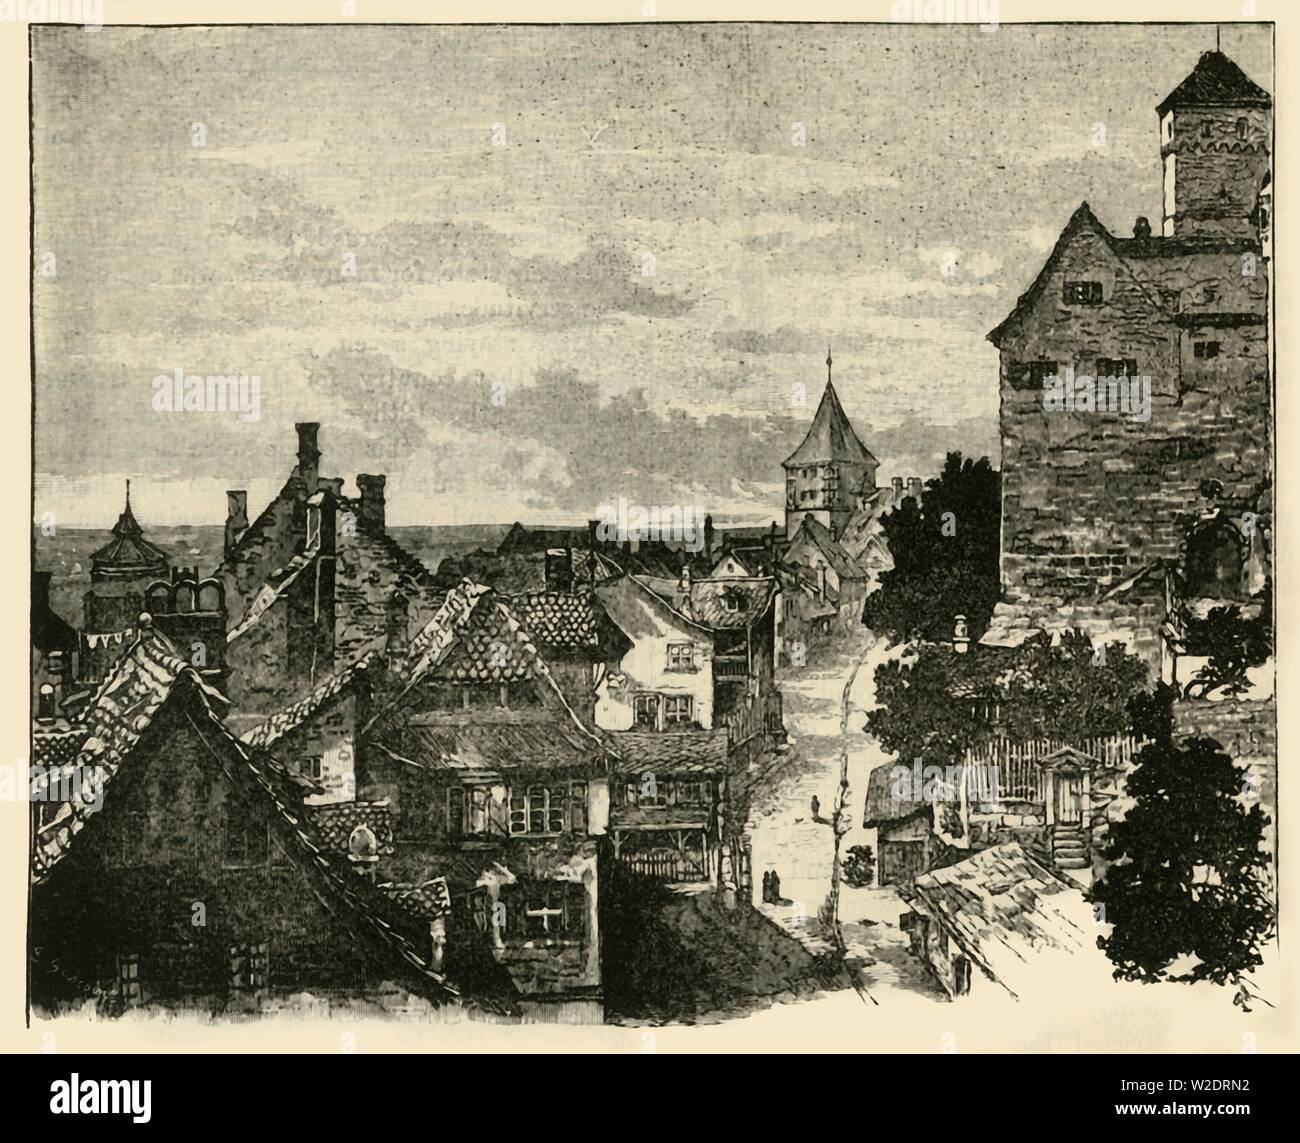 "'The Kaiserberg, Nuremberg', 1890. Nuremberg Castle, a medieval fortification represented the power of the Holy Roman Empire.  From ""Cassell's Illustrated Universal History, Vol. IV - Modern History"", by Edmund Ollier. [Cassell and Company, Limited, London, Paris and Melbourne, 1890] - Stock Image"